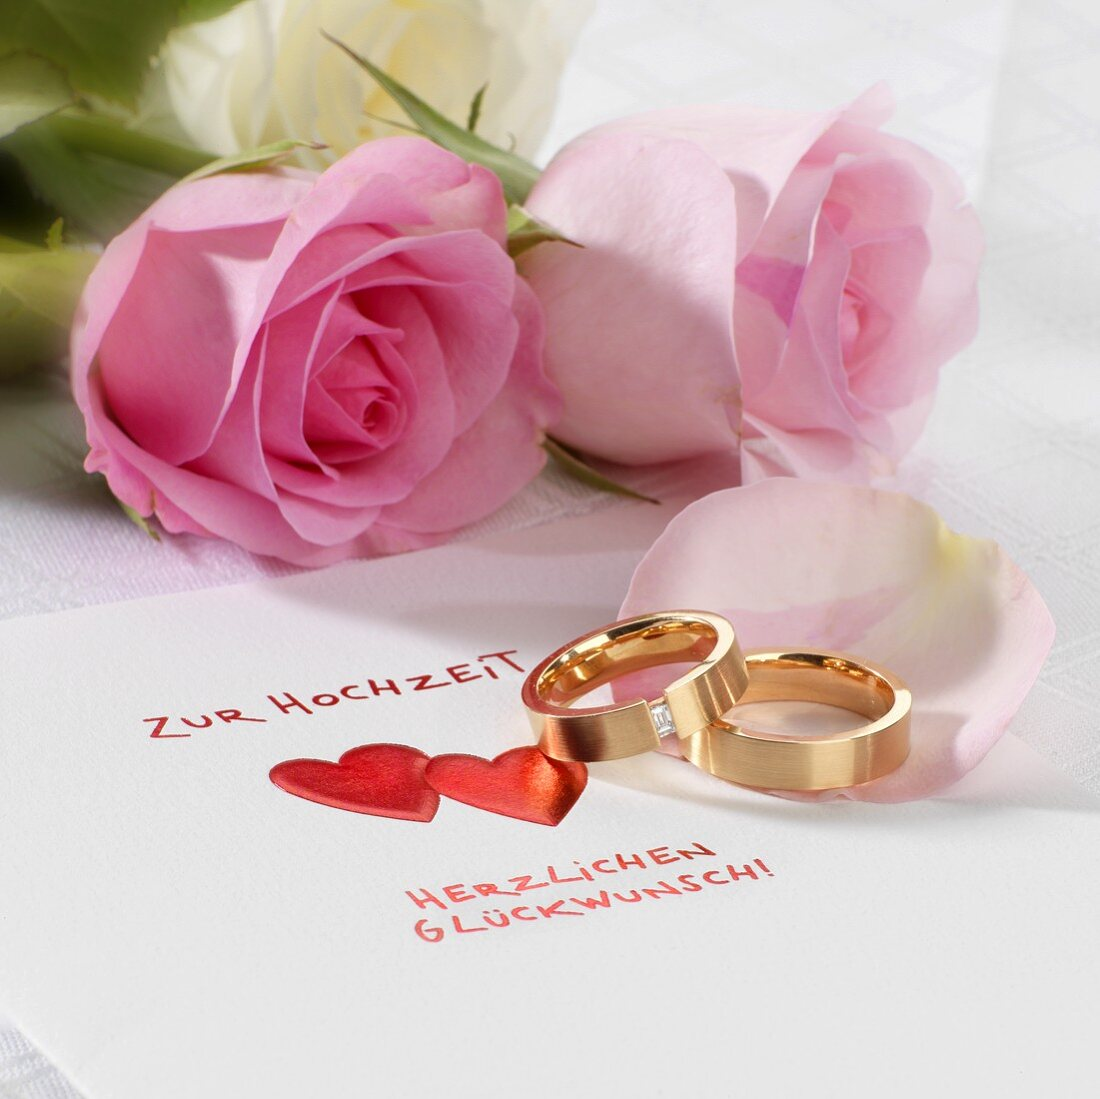 Wedding card, wedding rings and roses